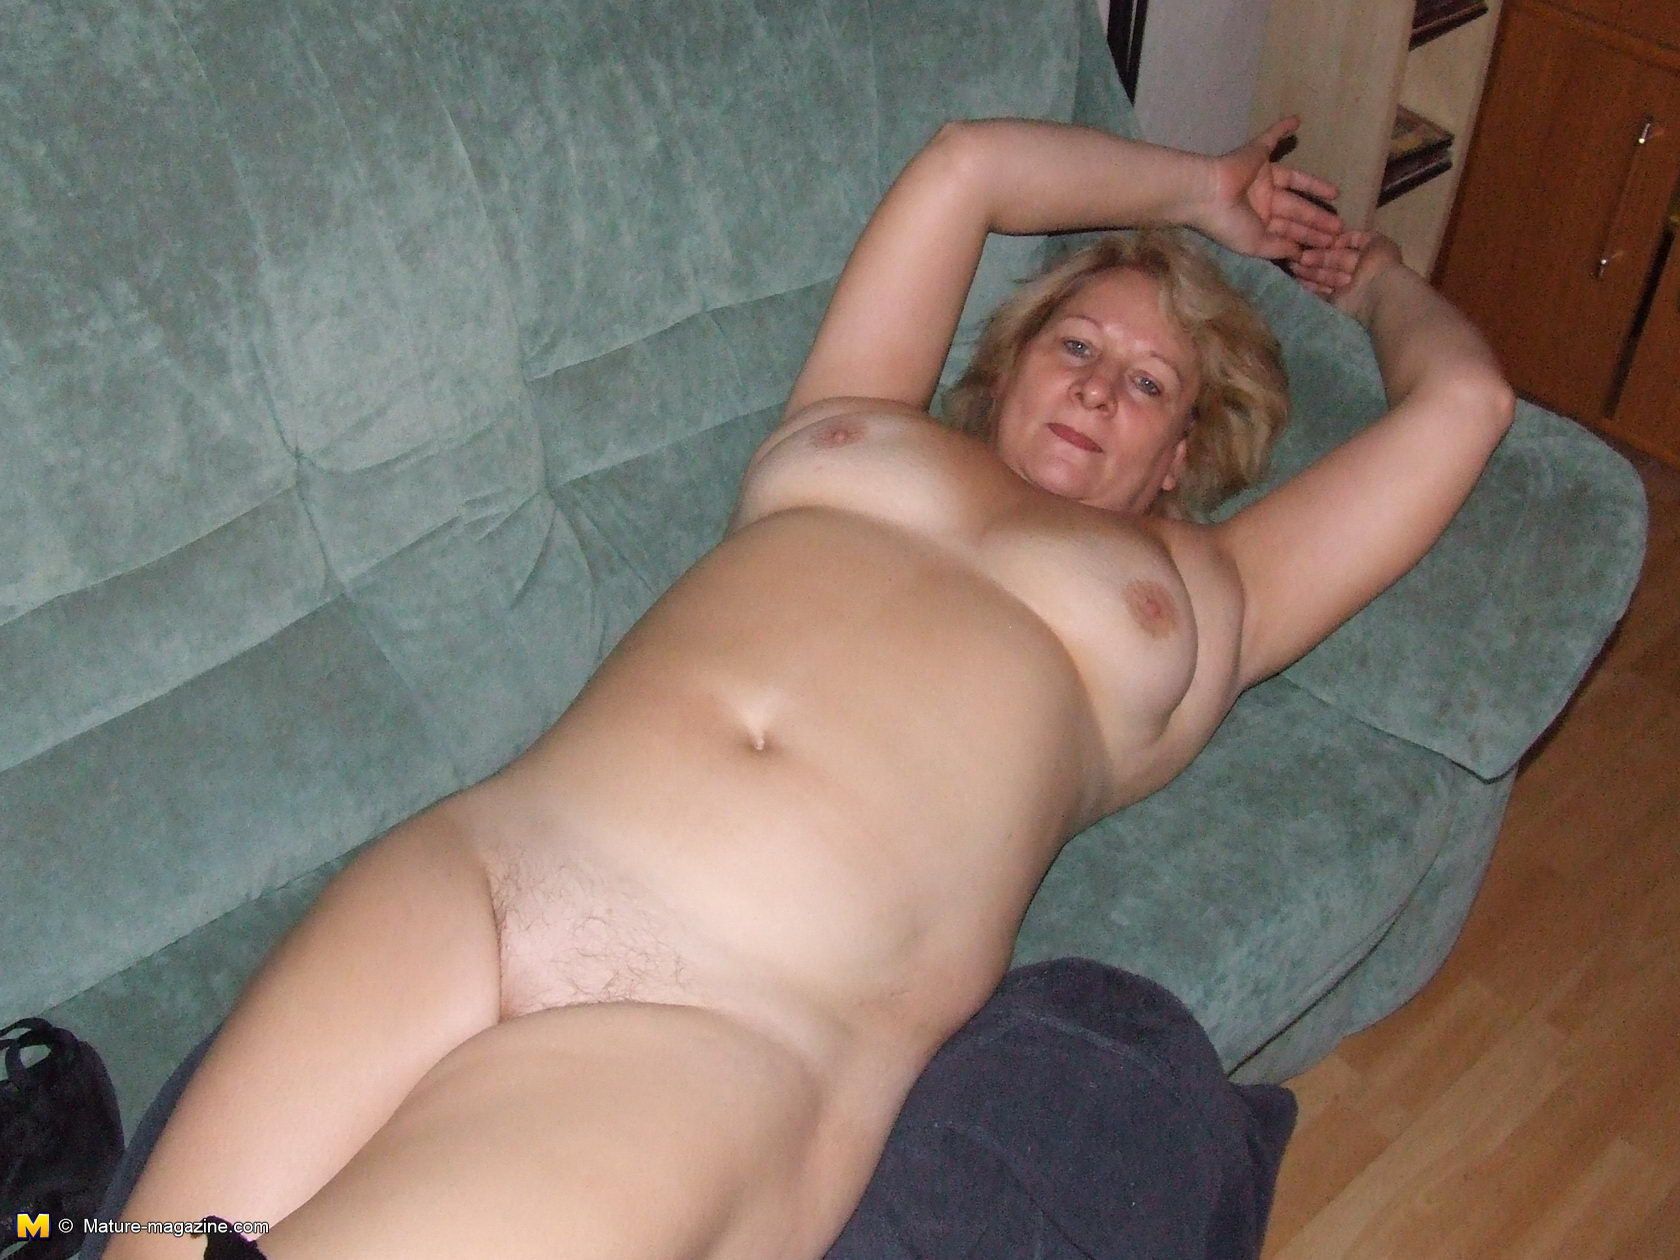 Girl nude in Kangerlussuaq. Dream Selina 34yo. Wanting men